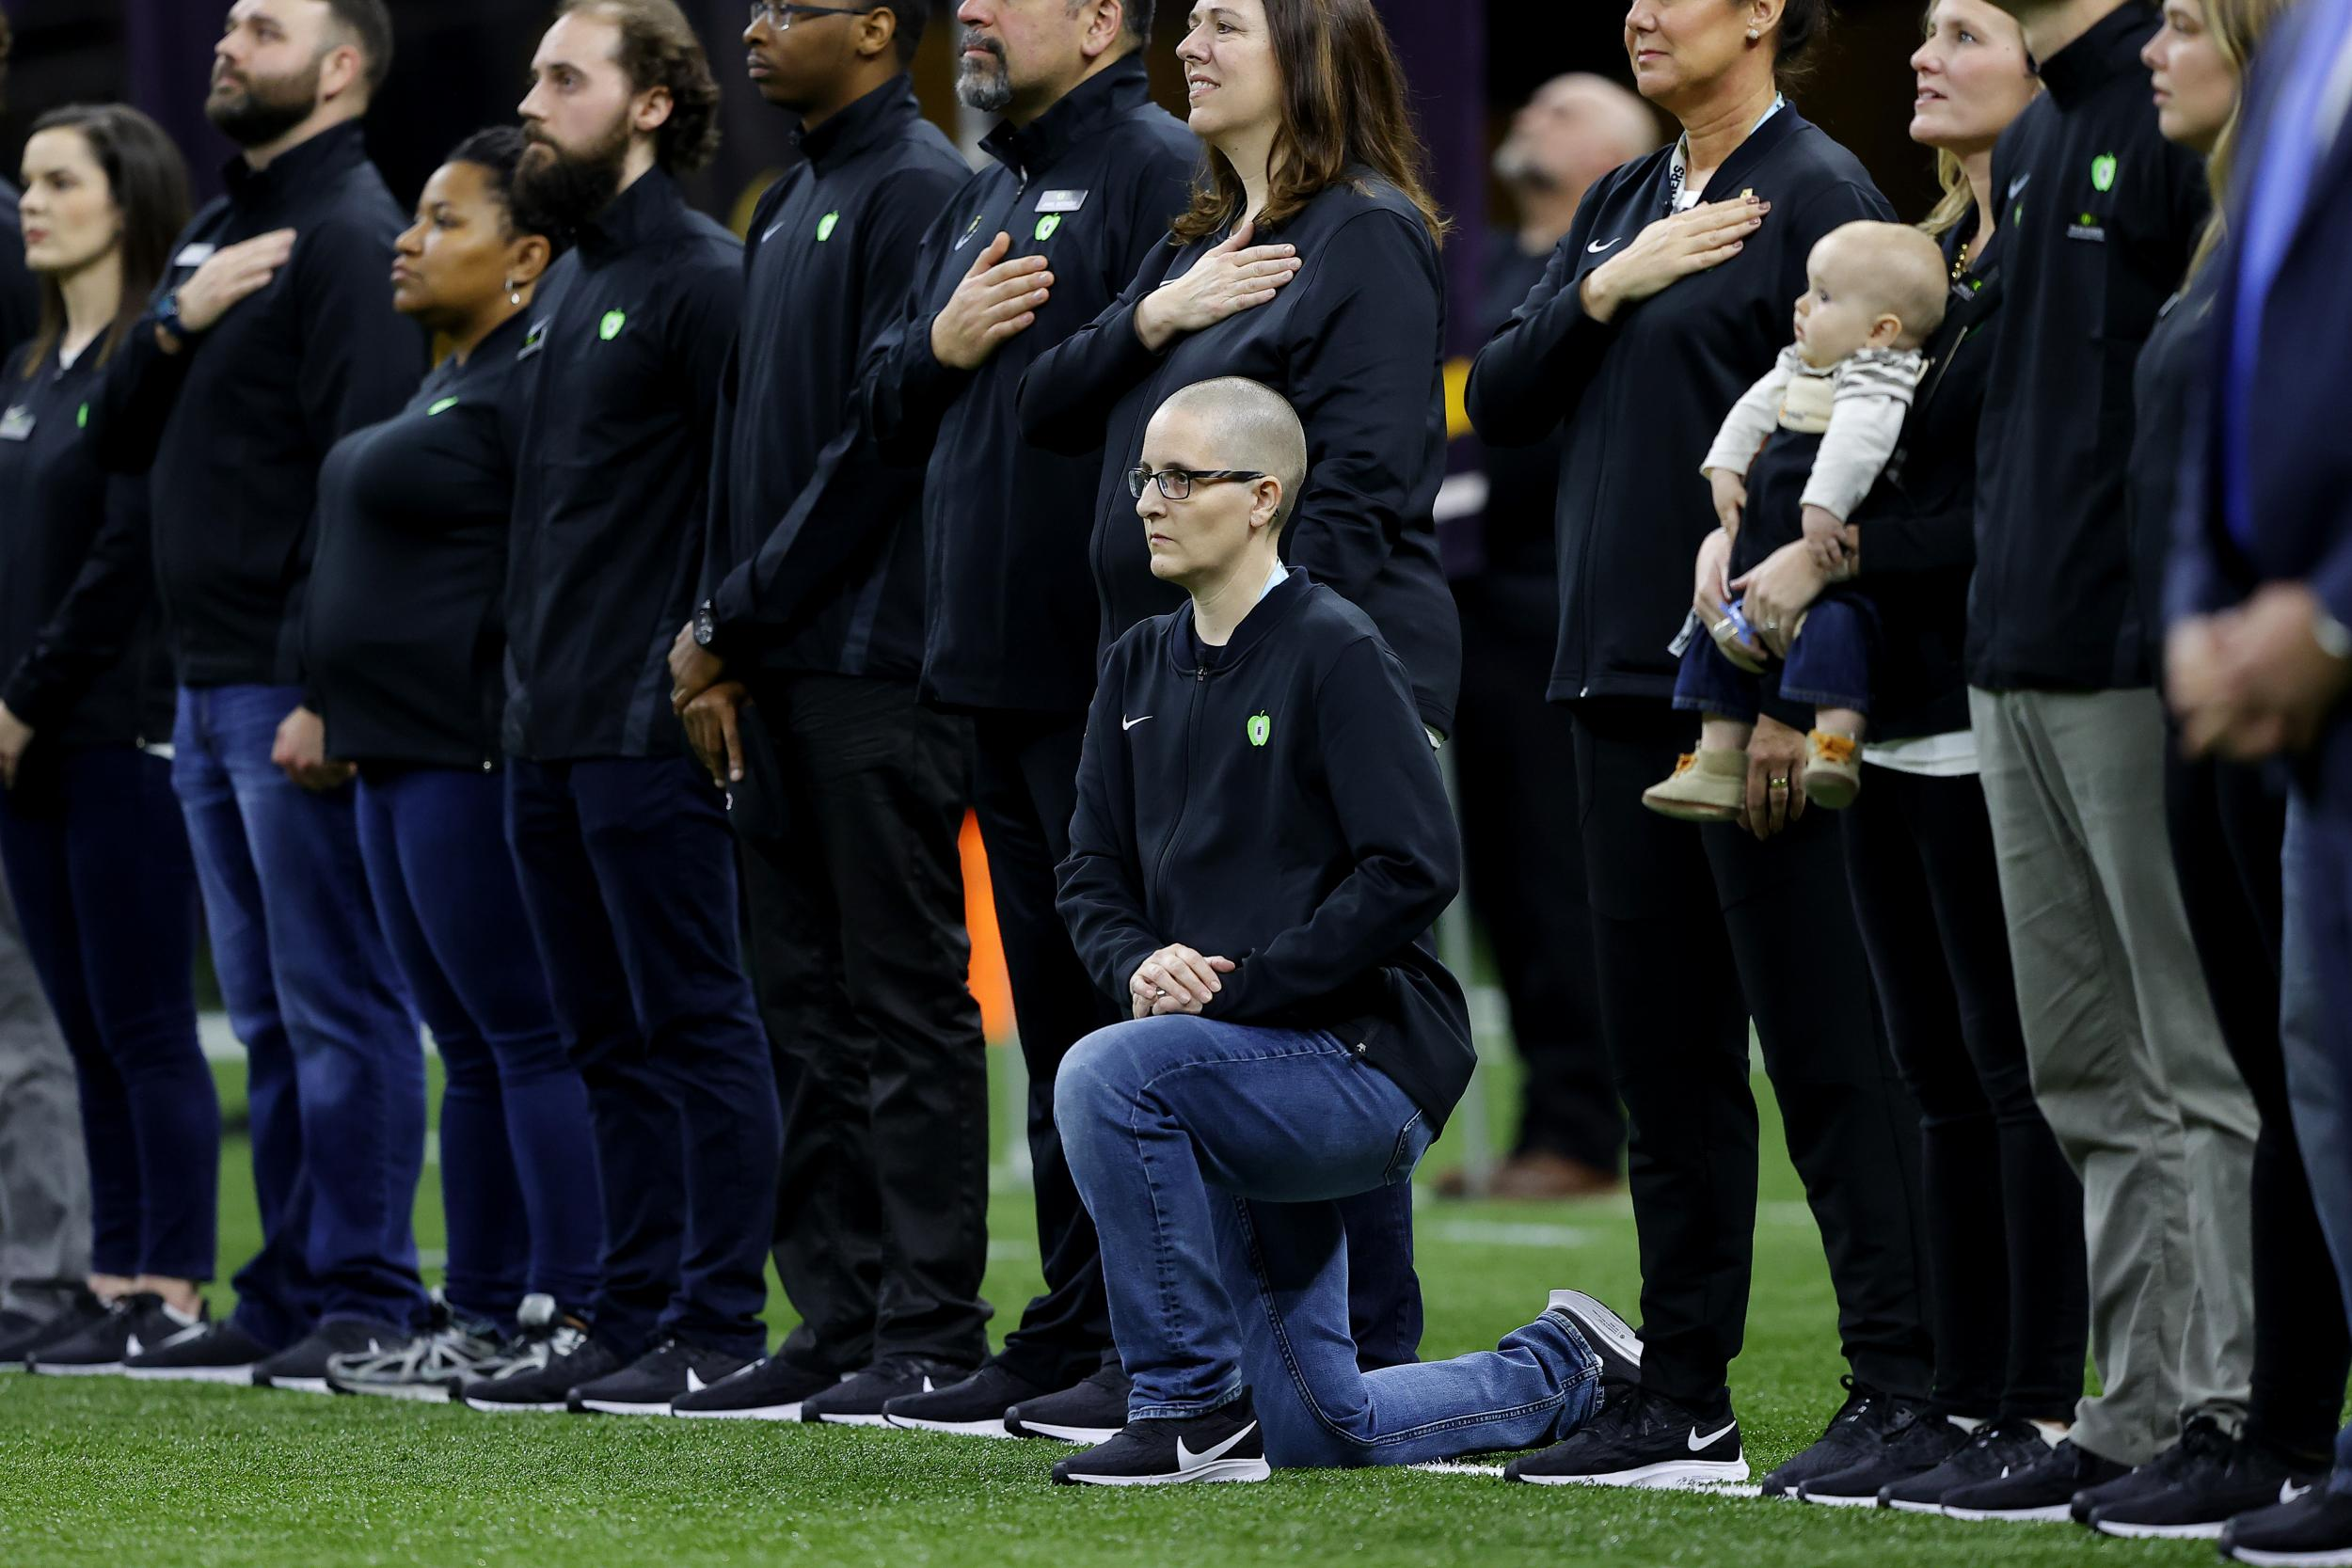 I'm the 'teacher of the year' who took a knee at the football game attended by Trump. This is why I did it